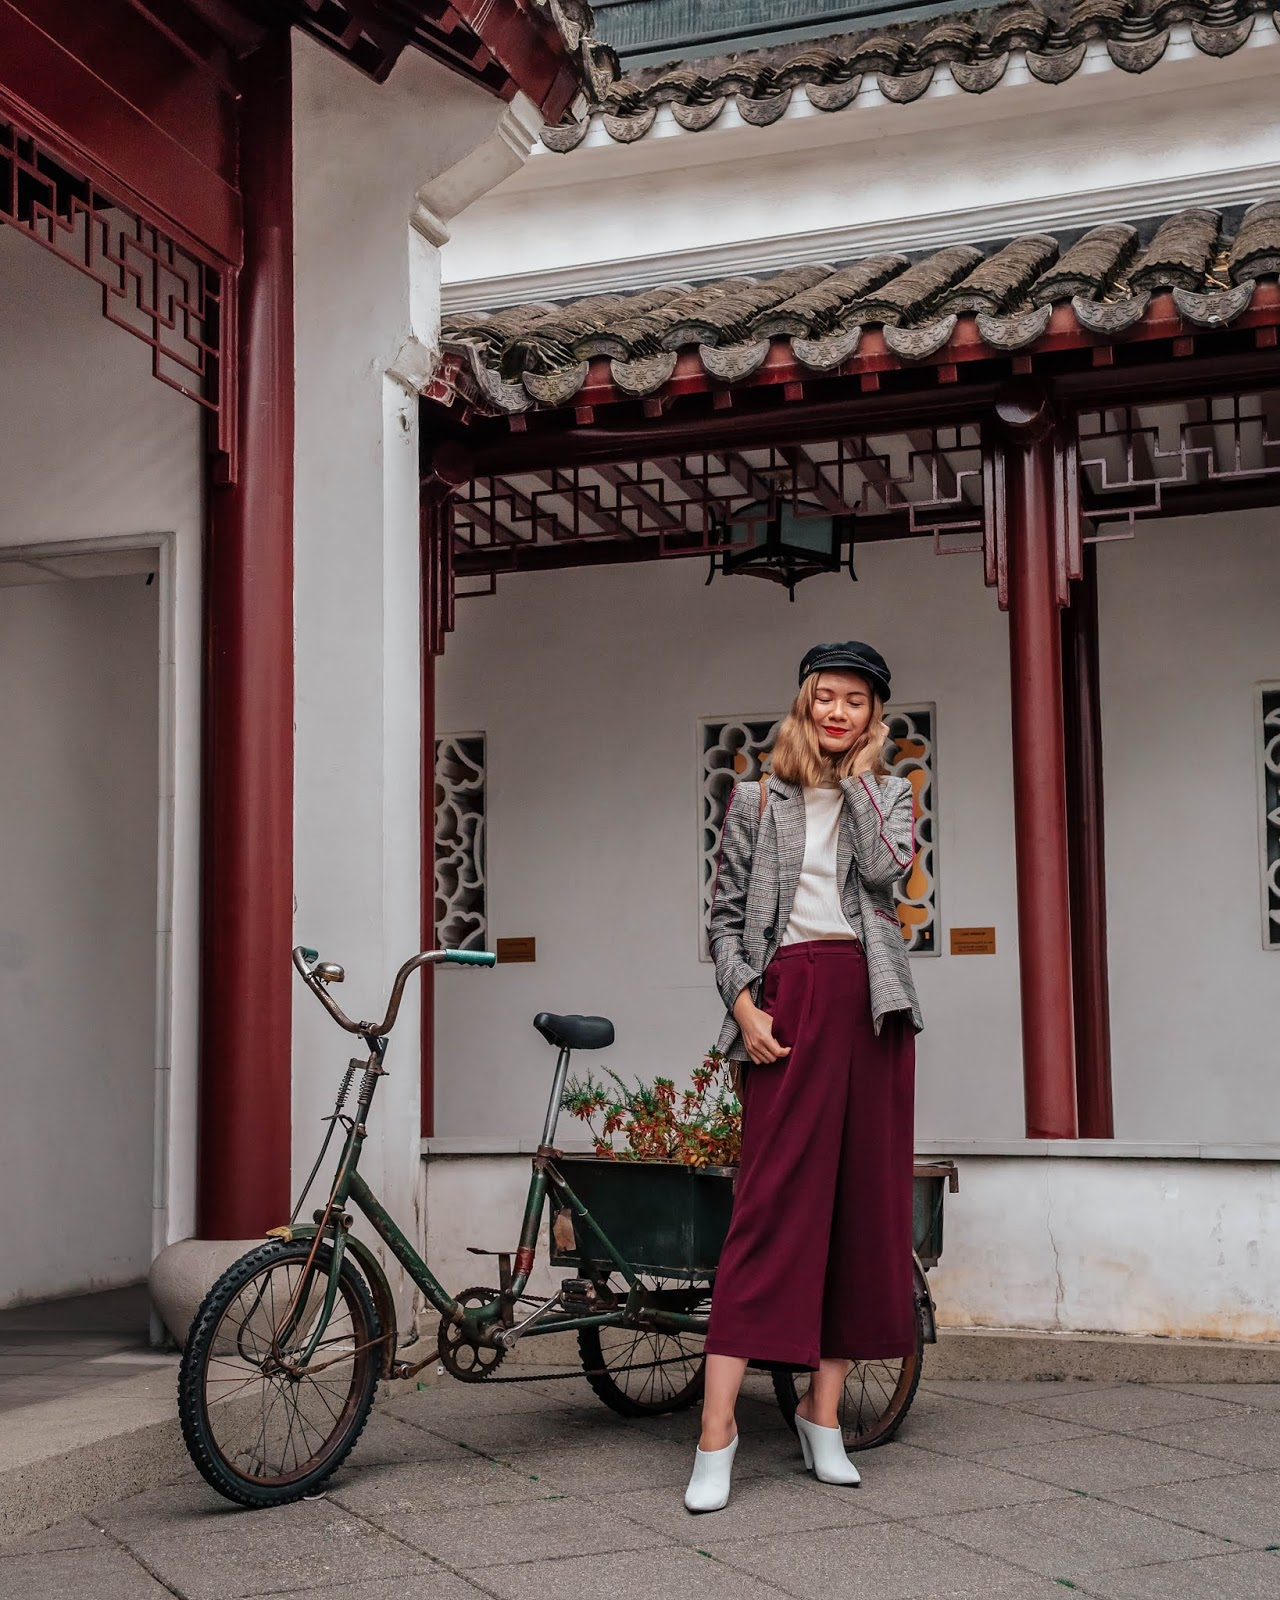 Camel tones, vancouver blogger, fall trends, fall 2018 trends, camel coat, cozy outfit for winter, fall outfit, fall style, canadian style, canadian fashion blogger, culottes, white mules, marc fisher shoes, chriselle lim collection, plaid blazer, sun yat sen garden